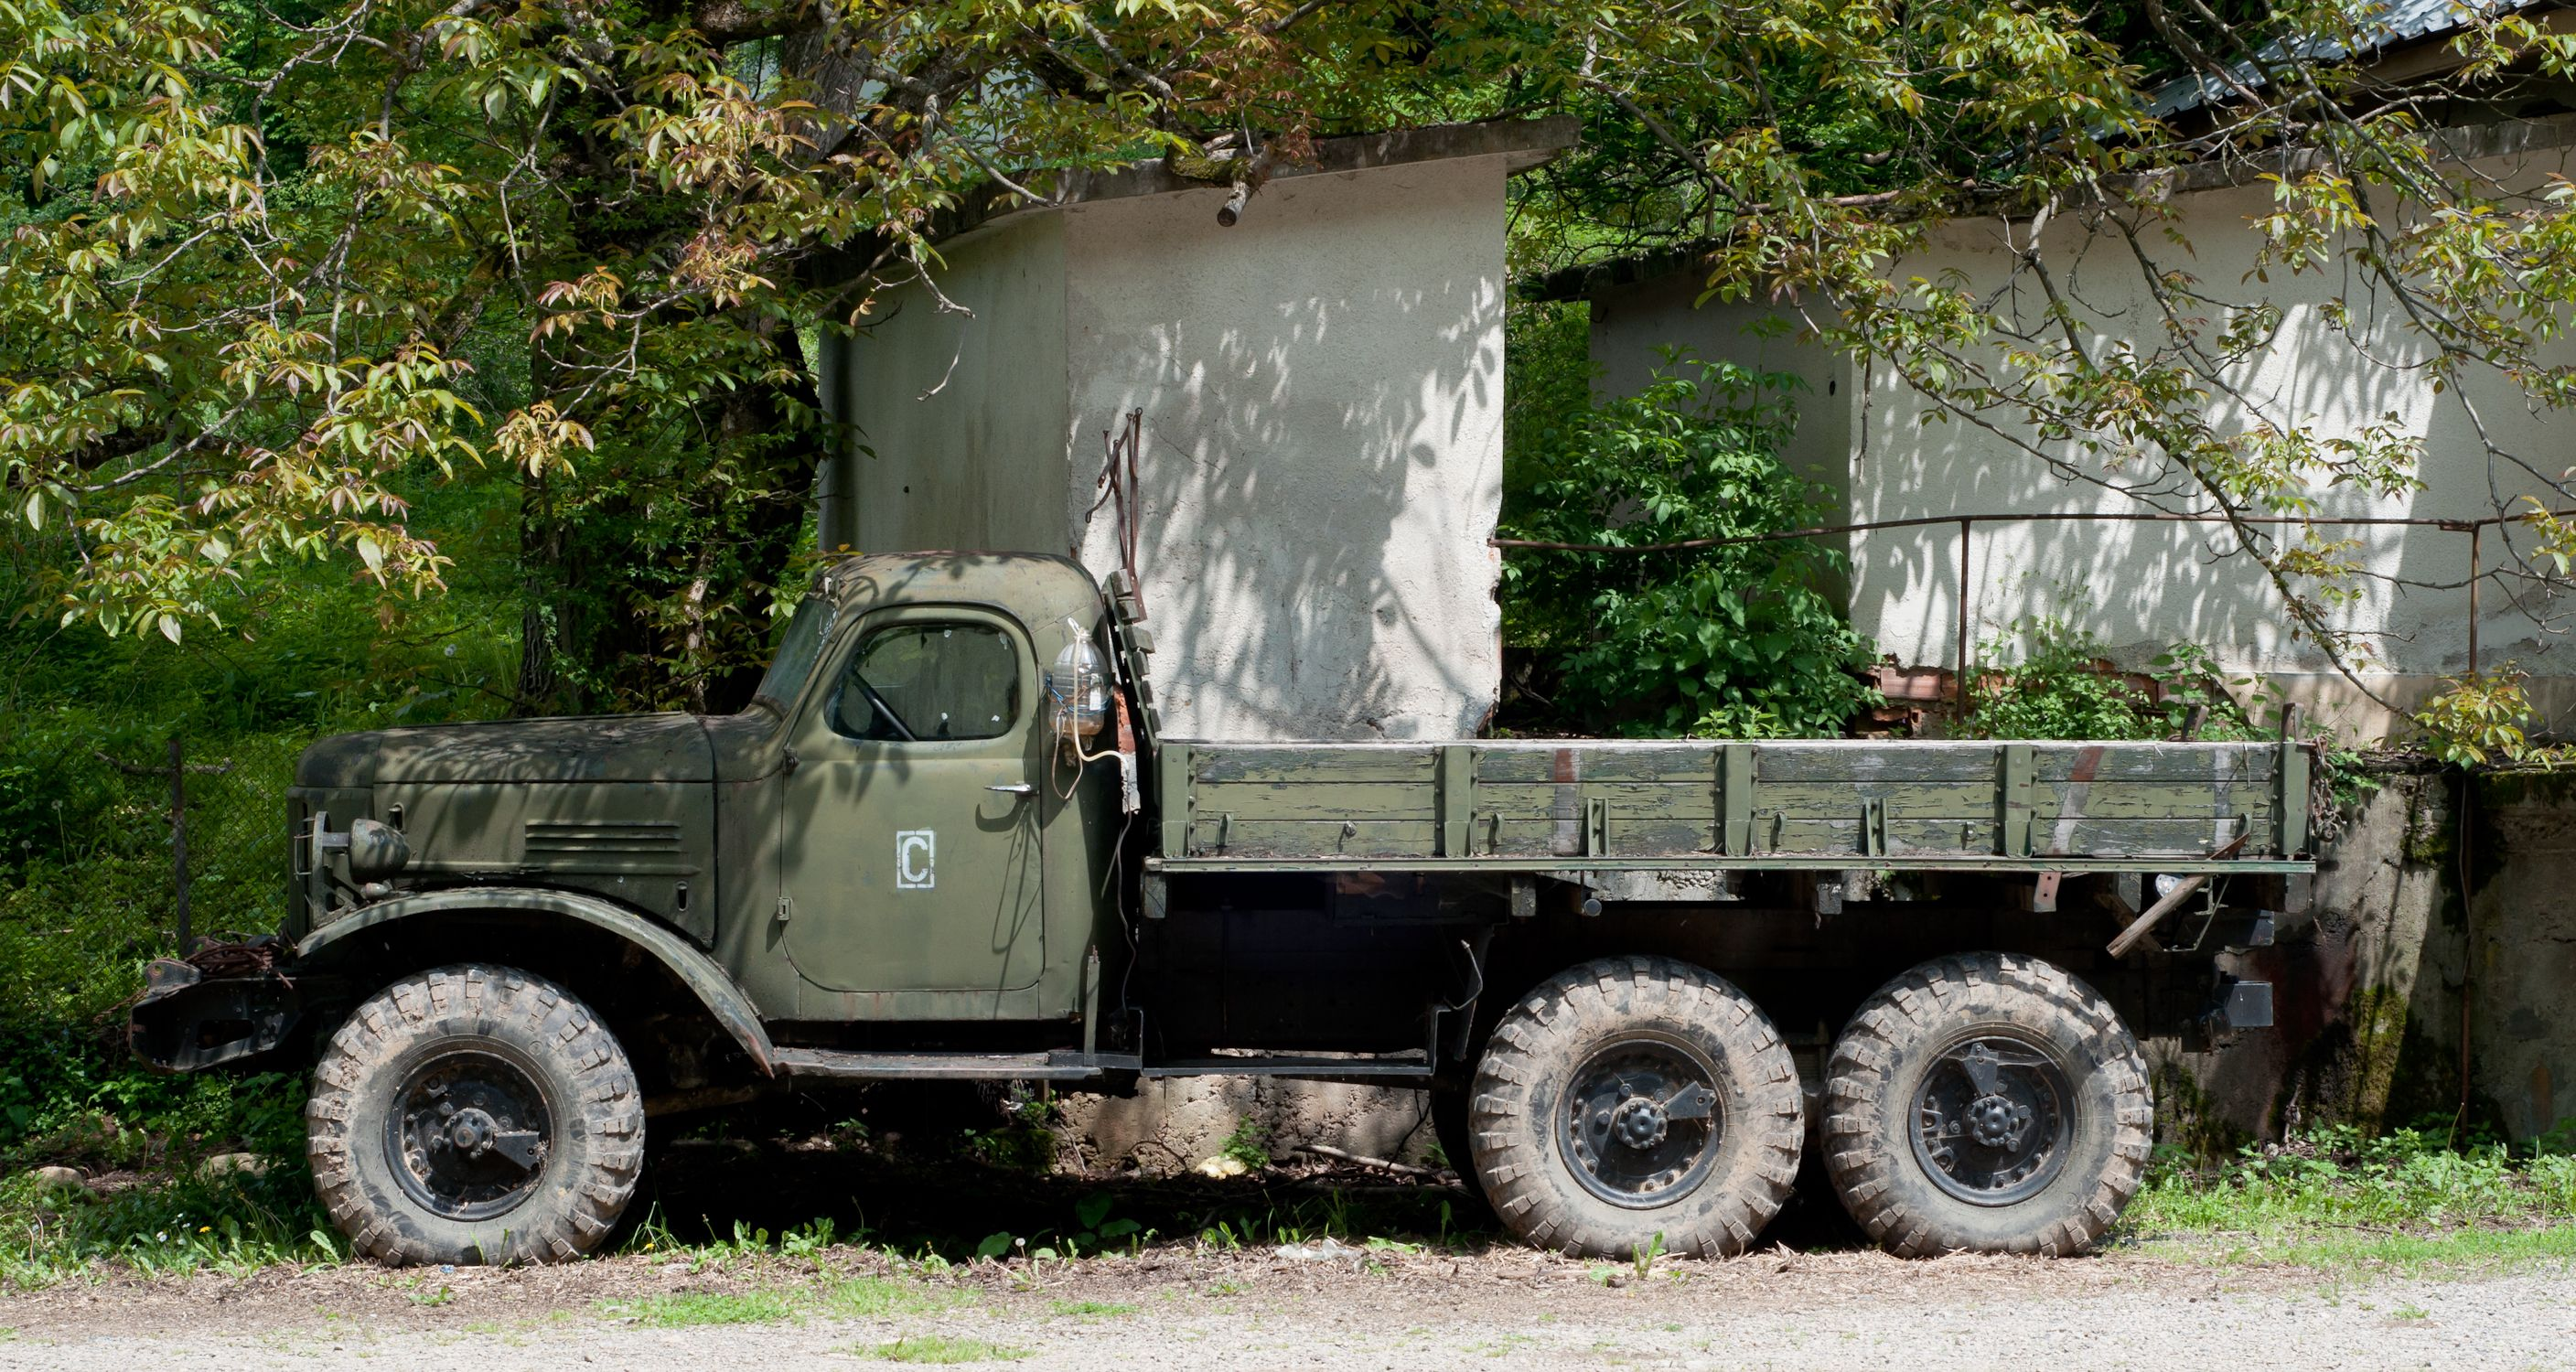 zil 157 - Google Search | ZIL-157 | Army vehicles, Military ... Google Map Zil on bing maps, road map usa states maps, amazon fire phone maps, ipad maps, gppgle maps, android maps, online maps, googlr maps, topographic maps, gogole maps, aerial maps, aeronautical maps, microsoft maps, msn maps, search maps, iphone maps, waze maps, stanford university maps, googie maps, goolge maps,